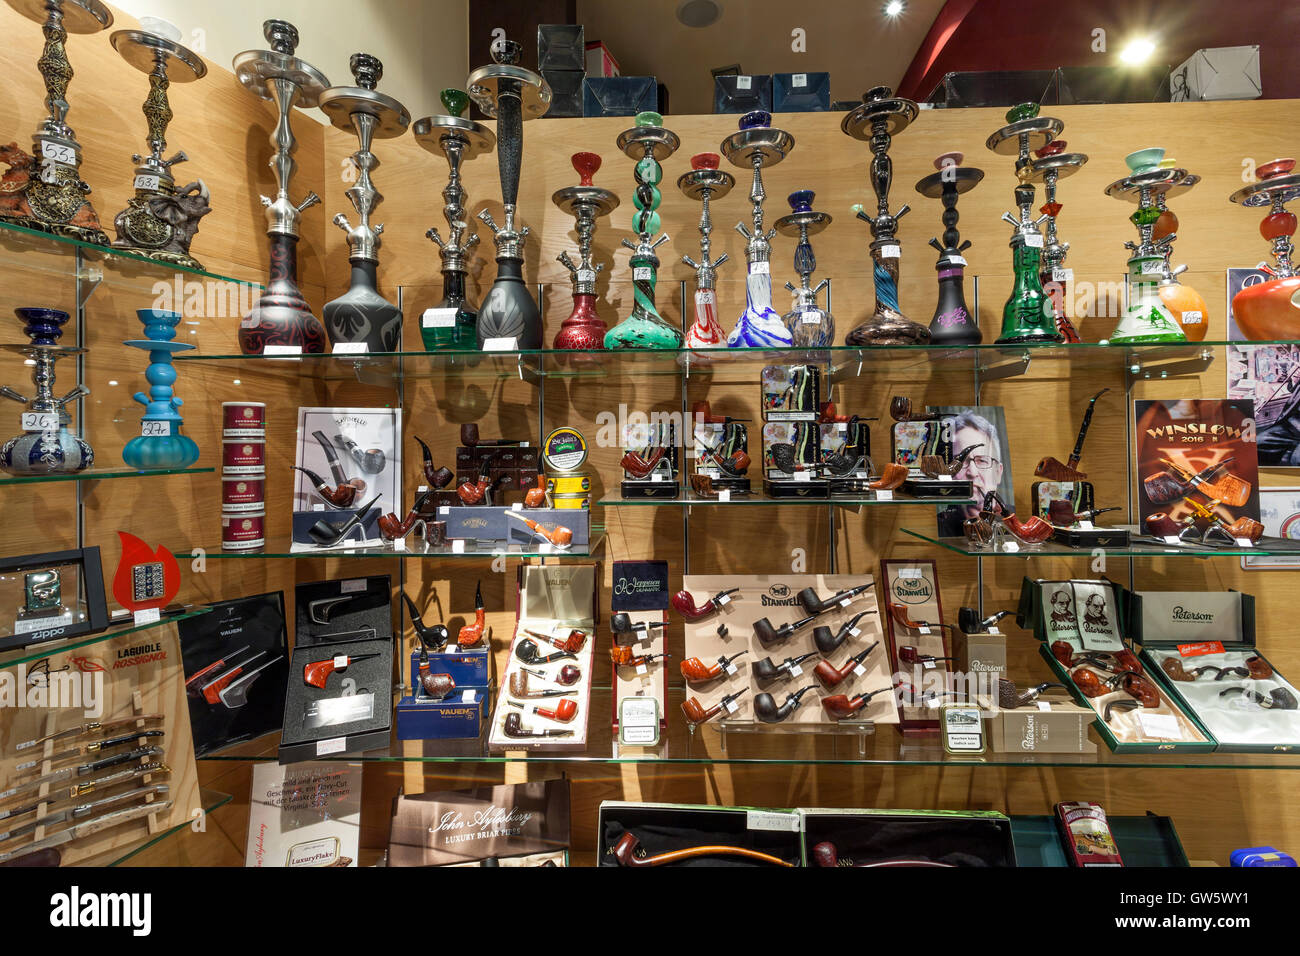 Smoking pipes and hookah shop Stock Photo: 118758725 - Alamy